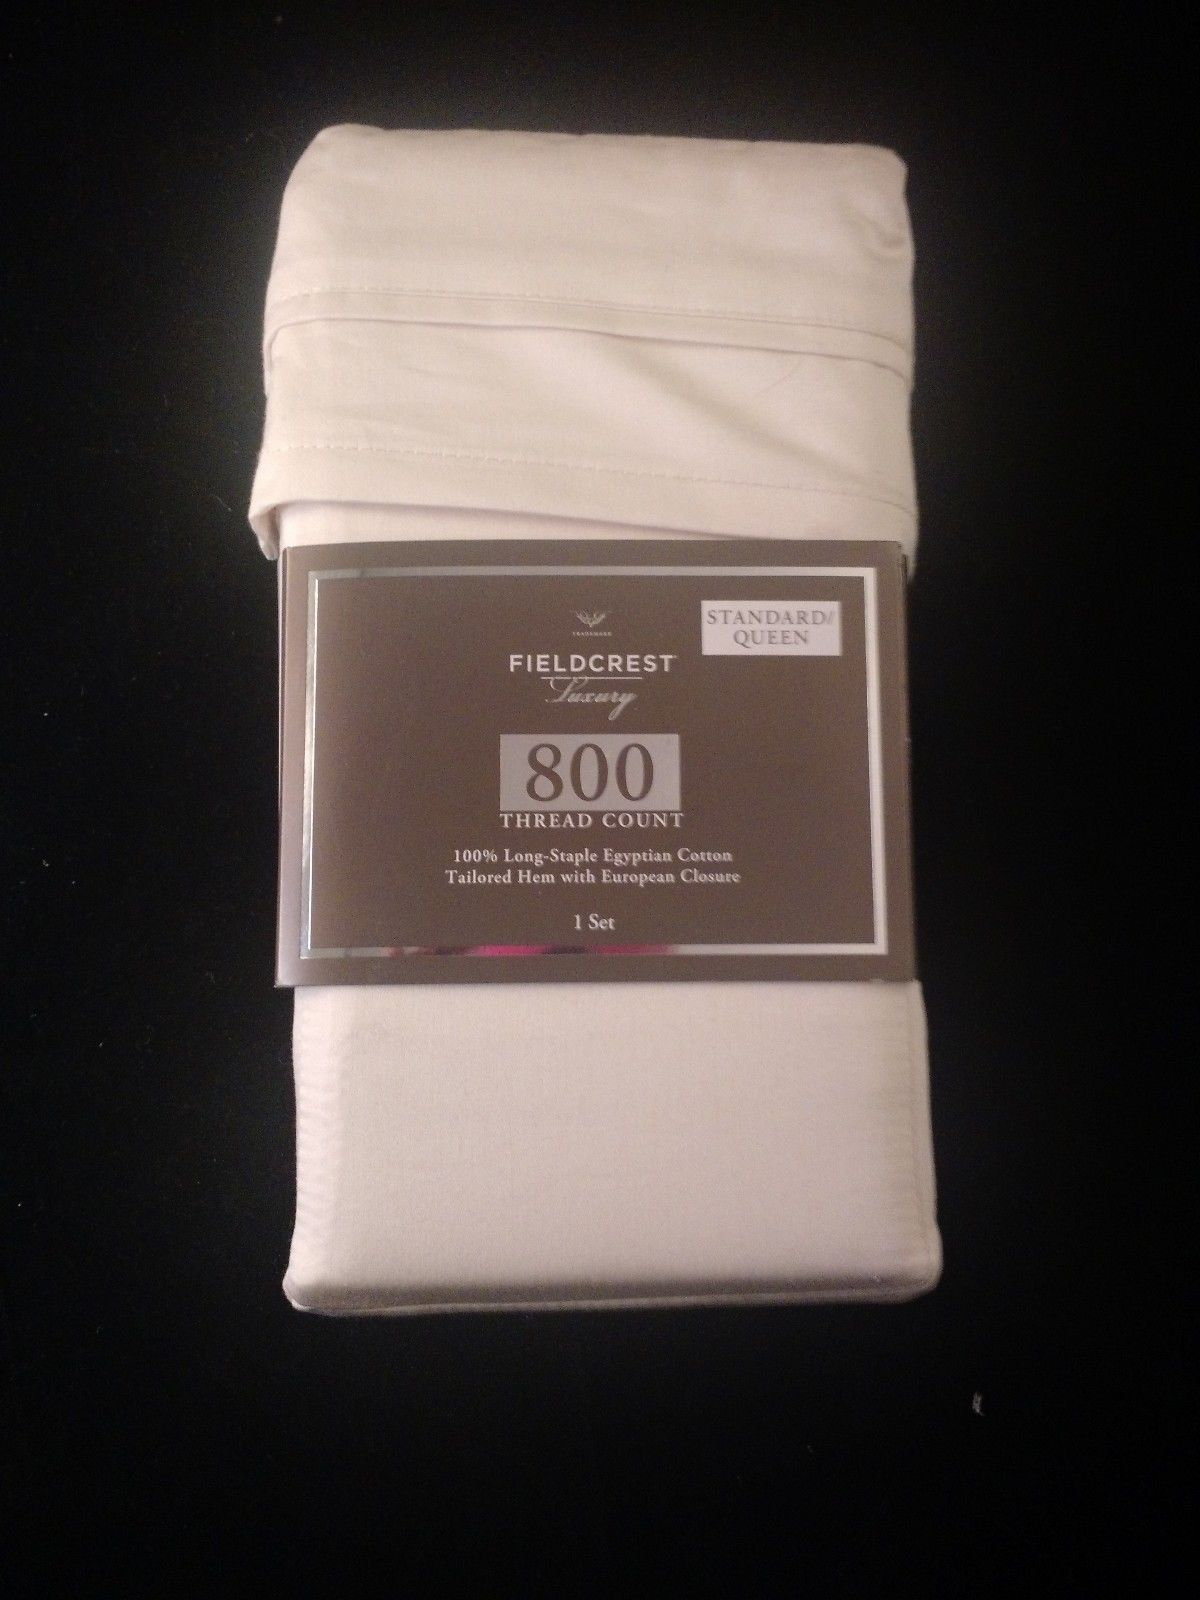 Fieldcrest Luxury Sheets | Target Queen Sheets | Ikea Queen Sheets